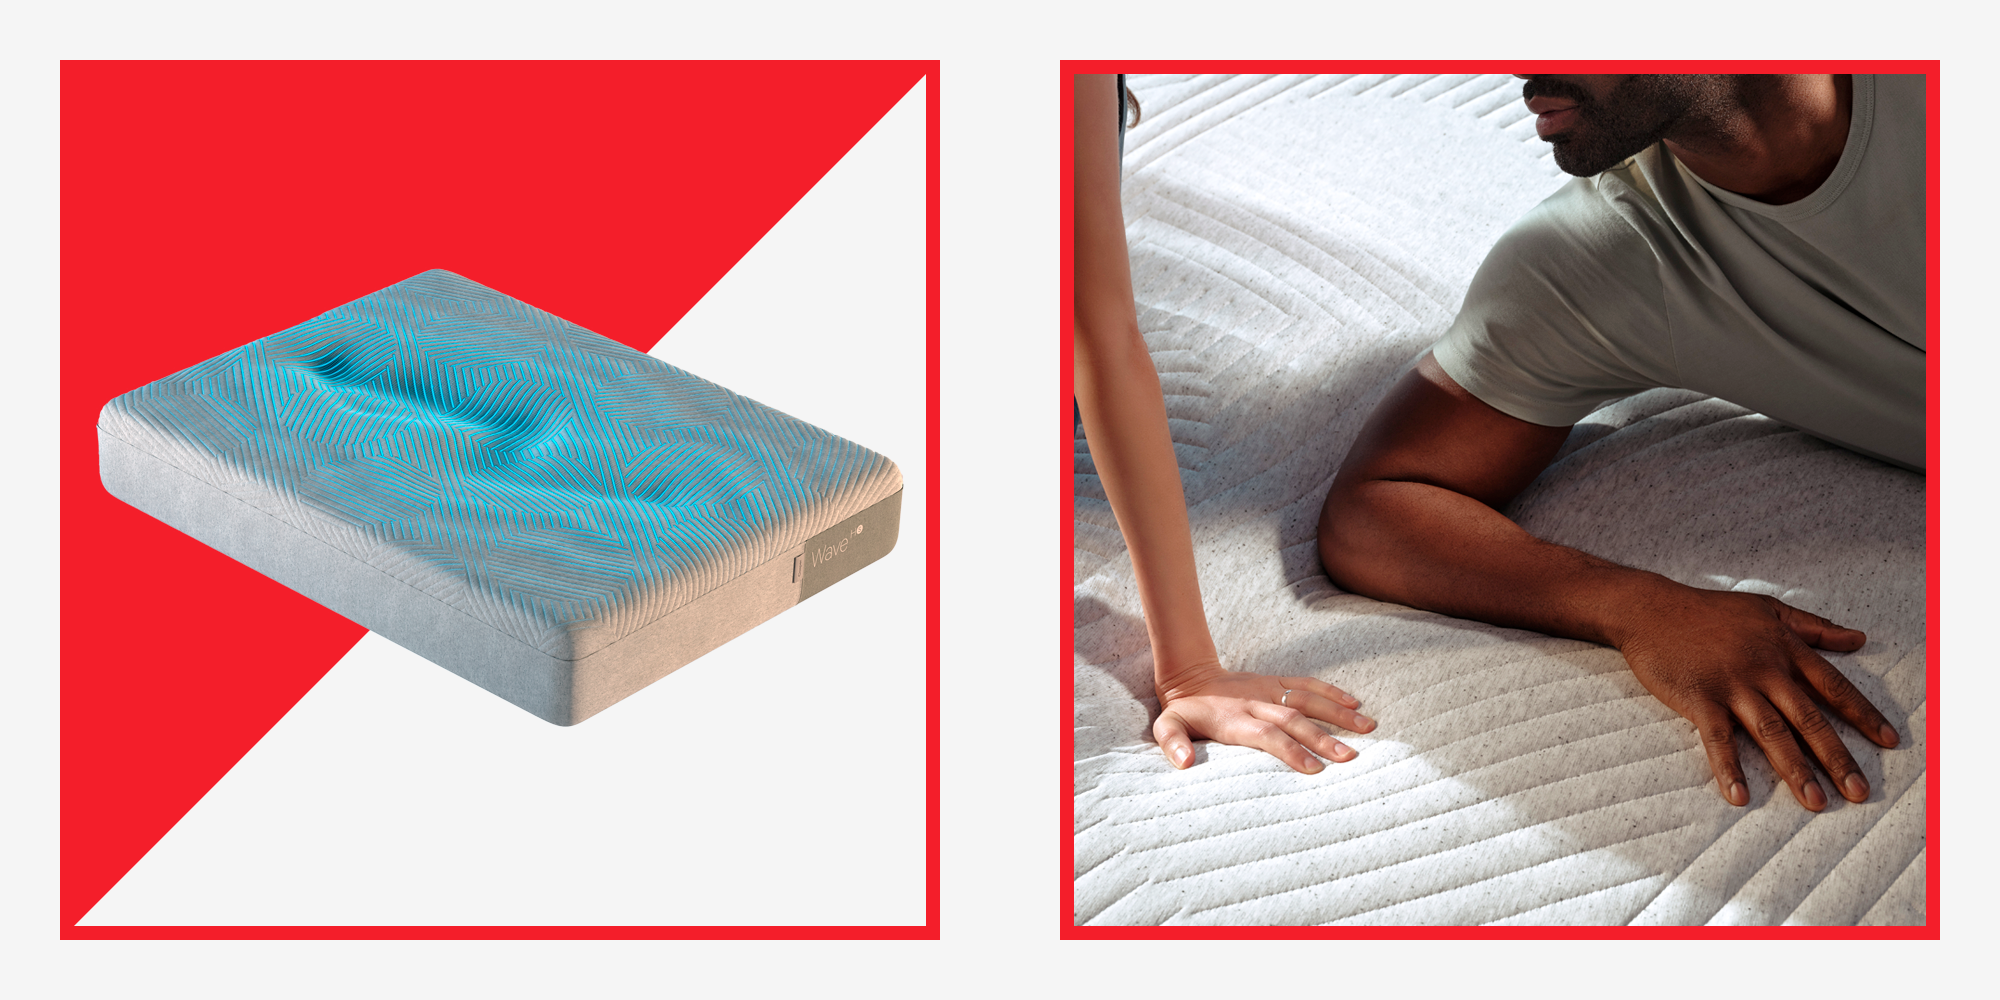 Casper's Wave Hybrid Snow Mattress Is Like the Cool Side of the Pillow for Your Whole Body